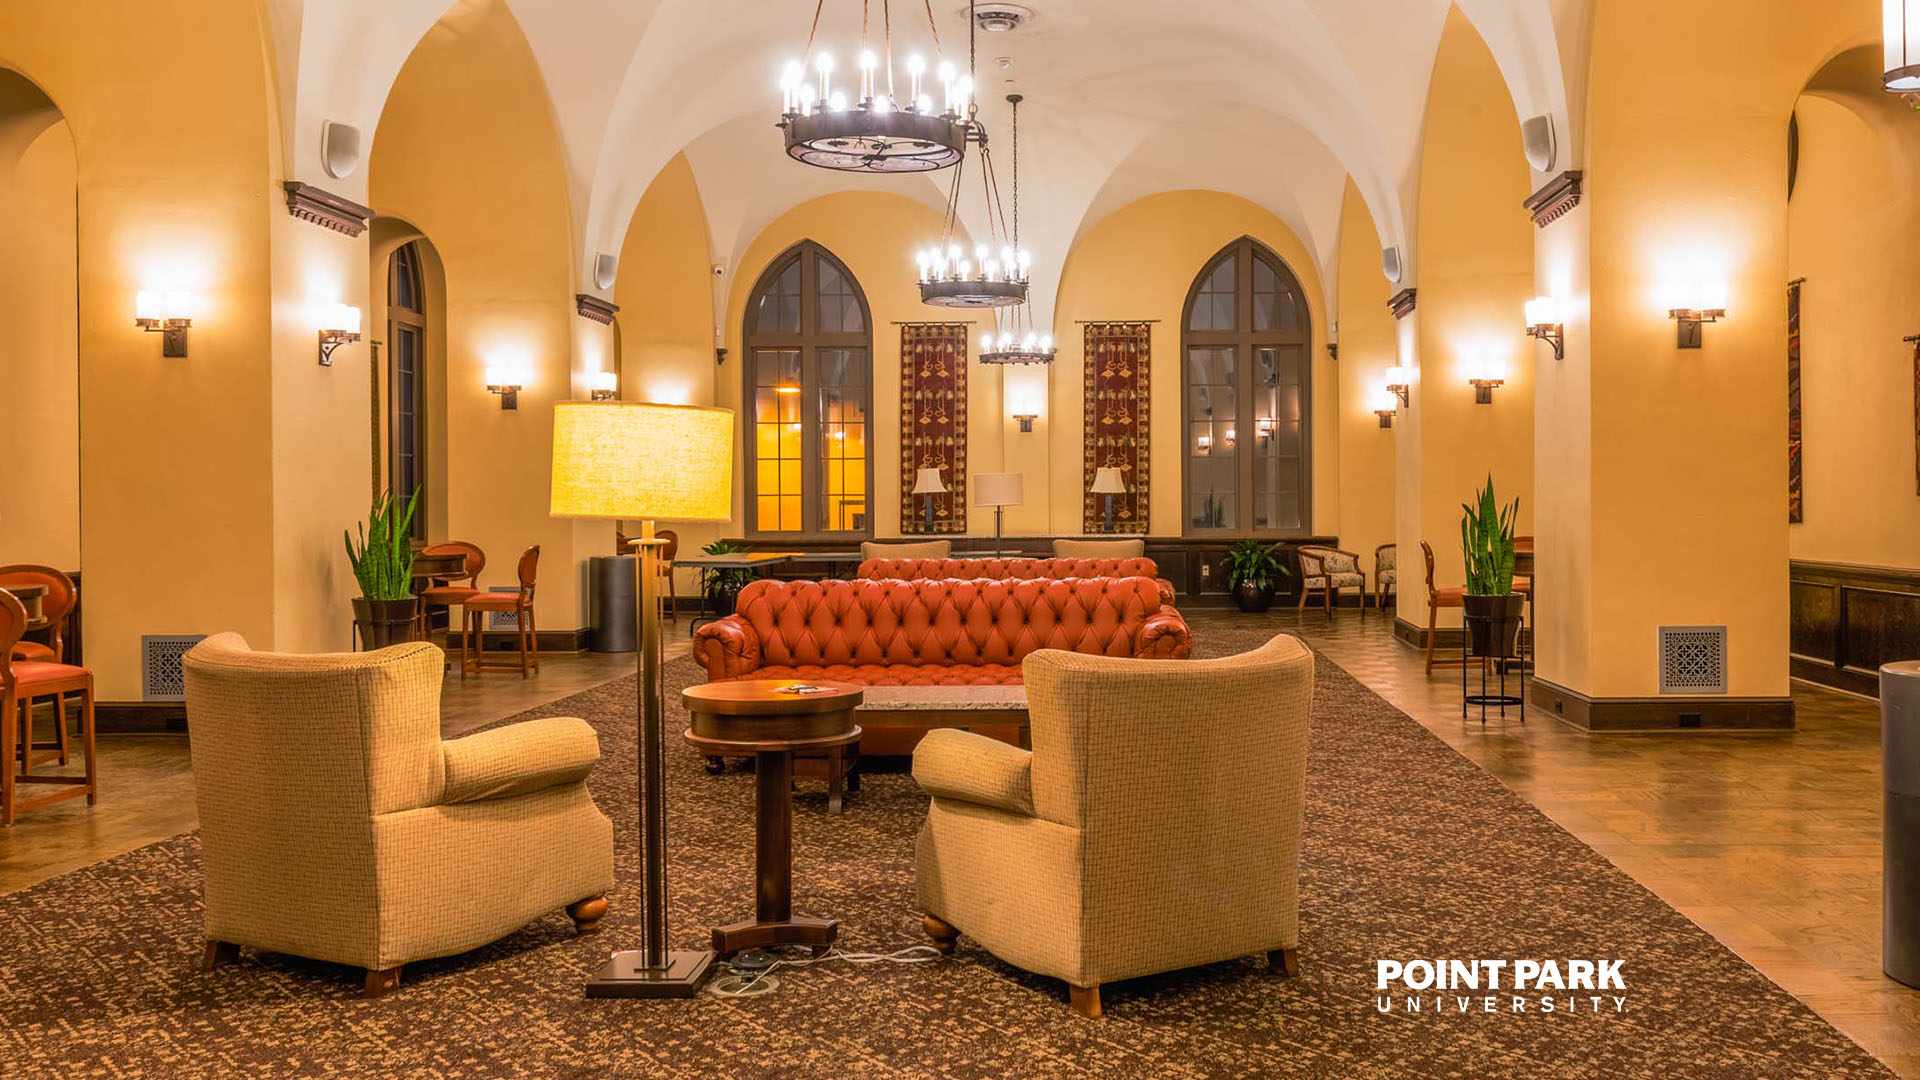 Point Park University 4 - Lawrence Hall Lounge